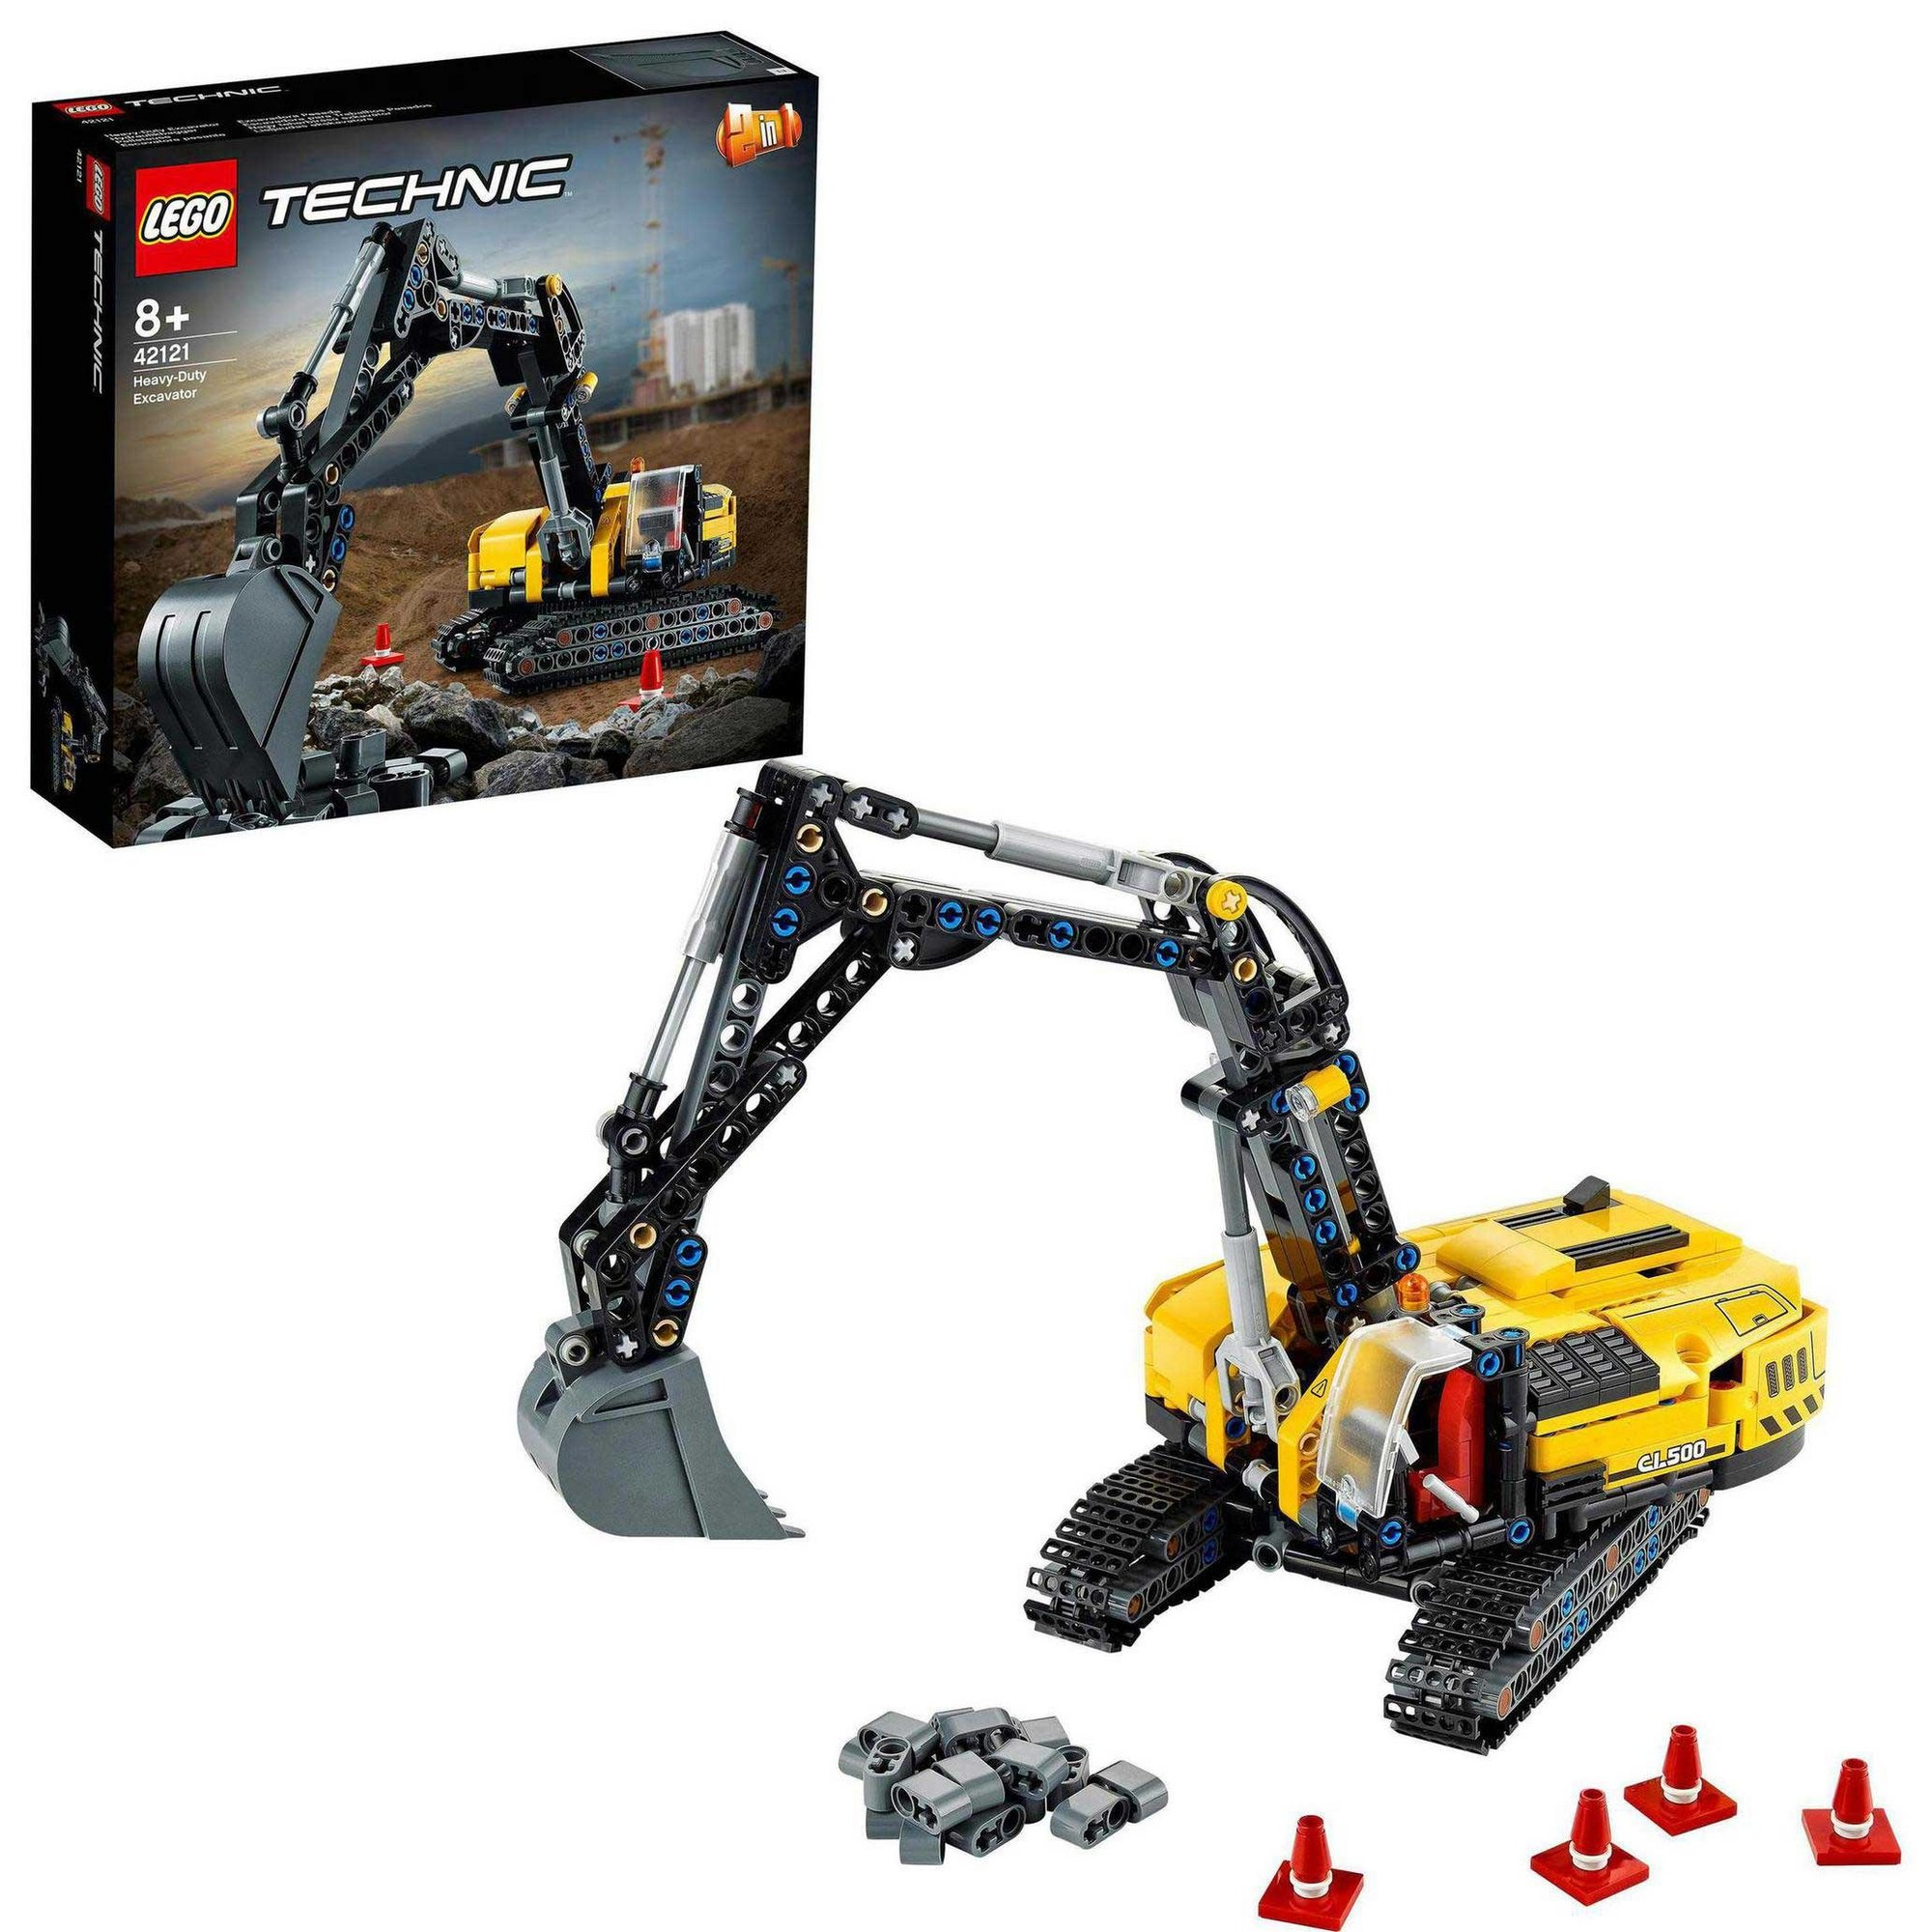 Image of LEGO Technic Heavy-Duty Excavator Building Set